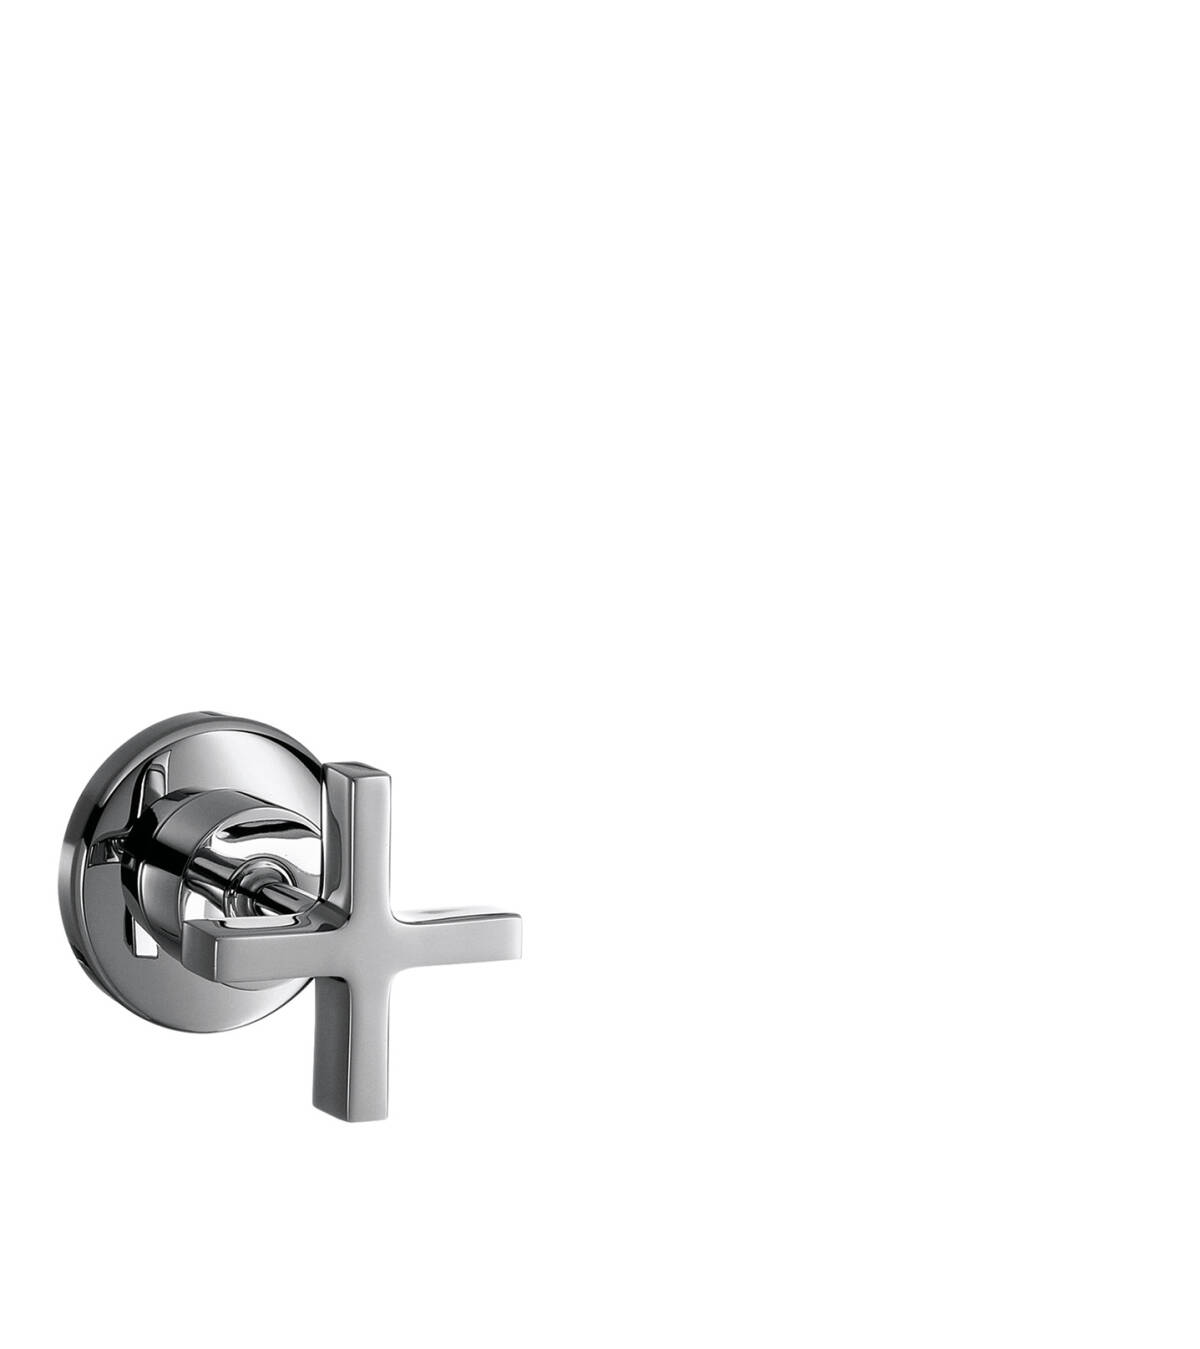 Shut-off valve for concealed installation with cross handle, Polished Nickel, 39965830